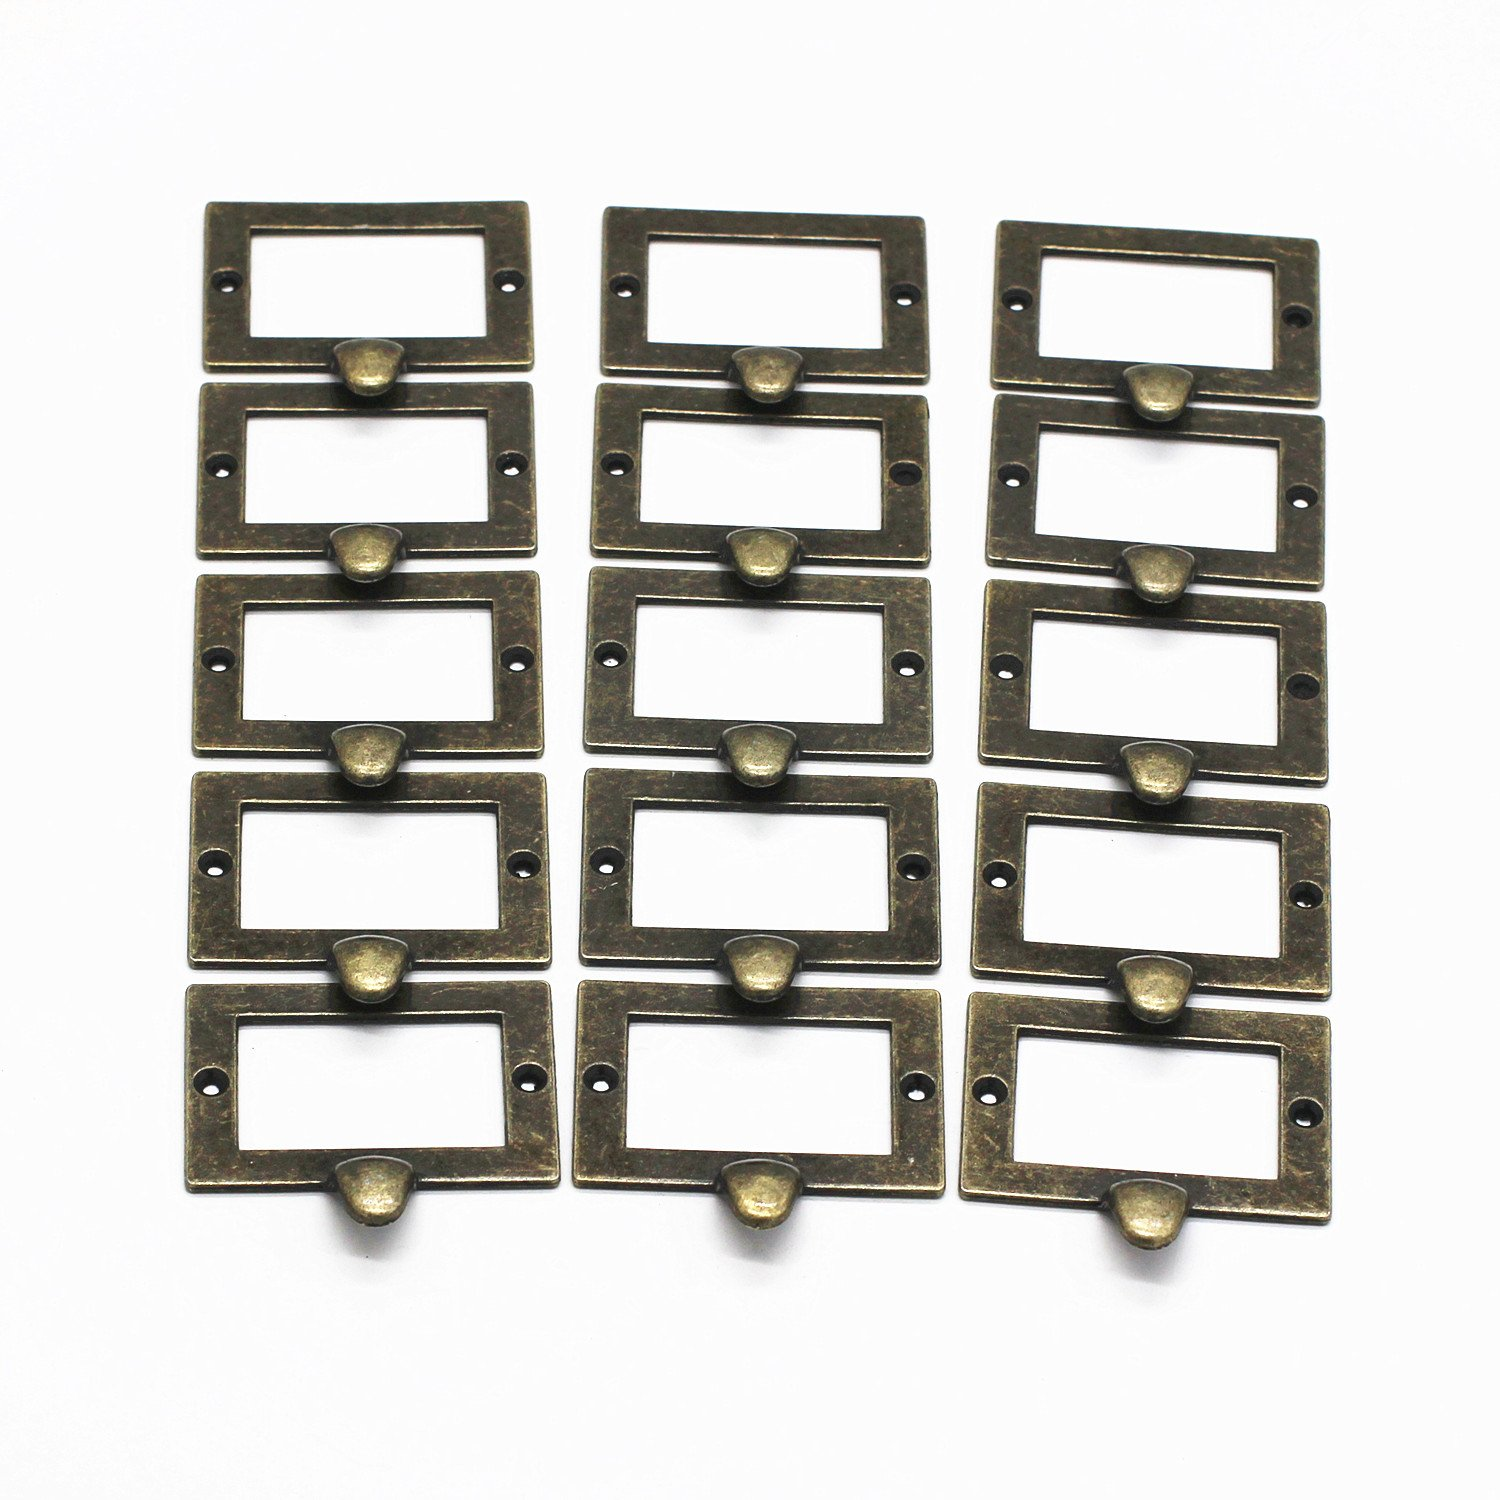 WEICHUAN 15 Pieces 72mm68mm Card Holder Drawer Pull/Label Frames Card/Label Holder/Tag Pull/Cabinet Frame Handle/File Name Card Holder - Metal Art Bronze Tone with screws